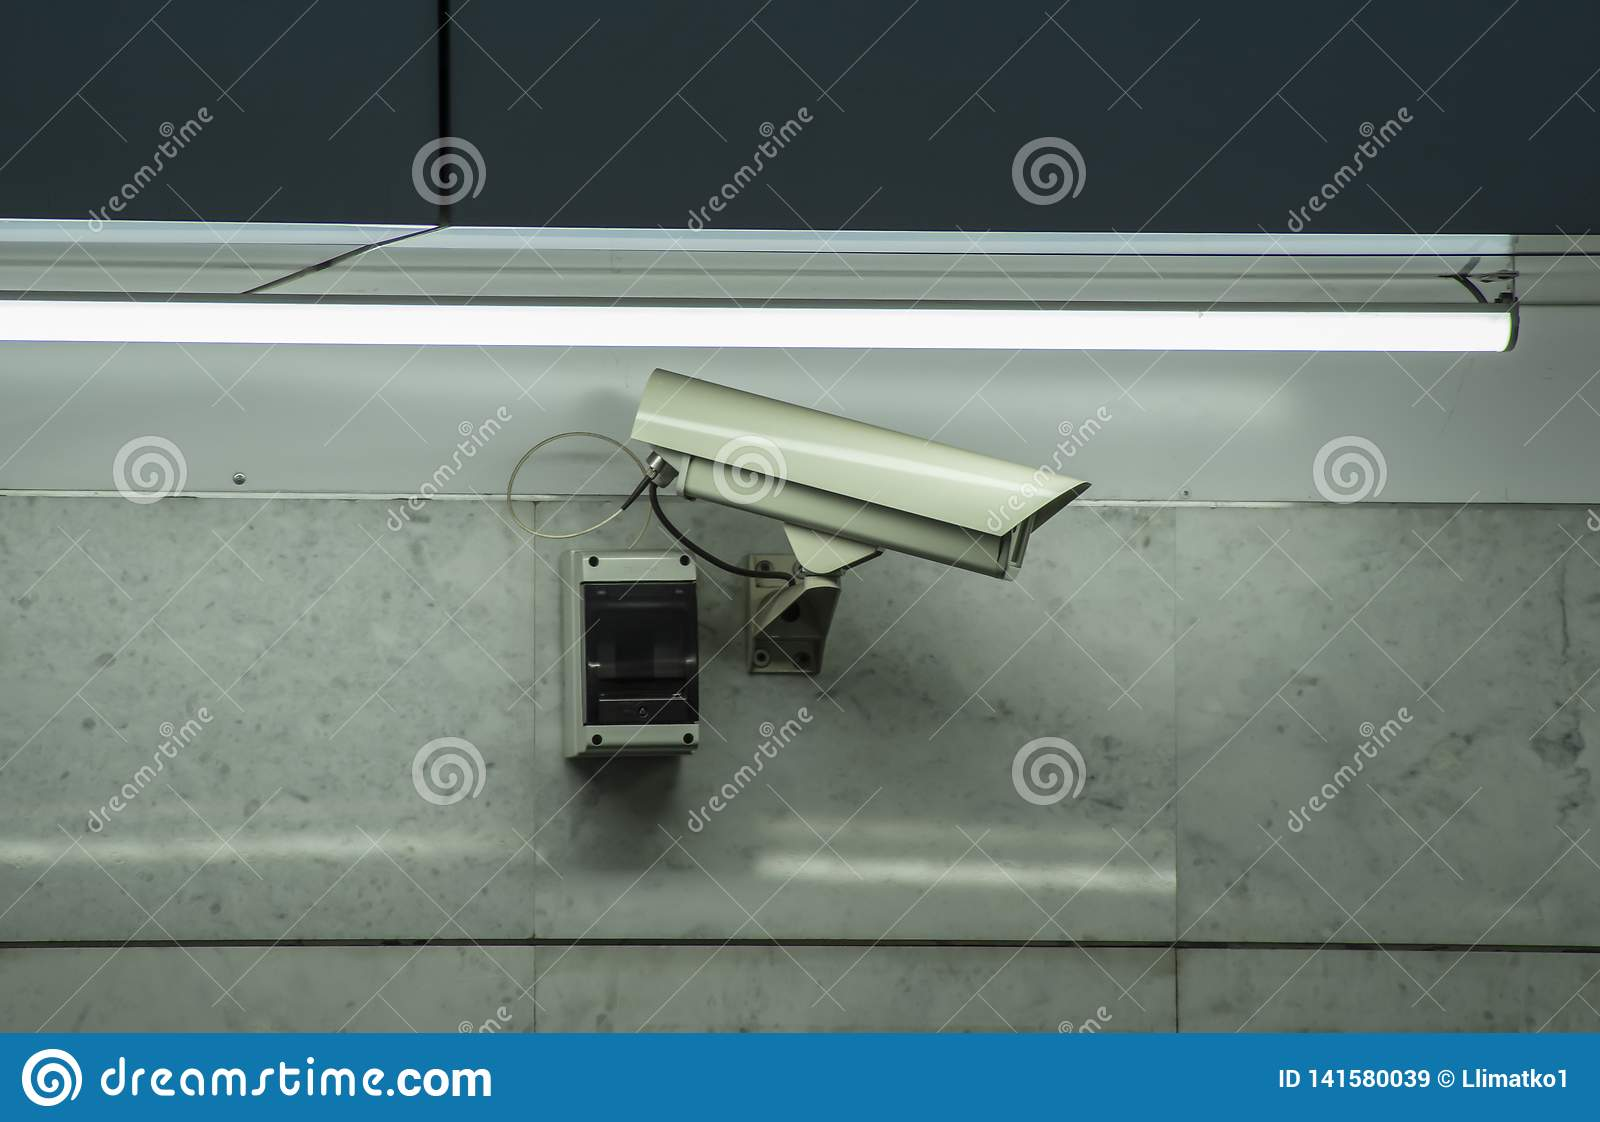 CCTV security camera installed in airport and subway